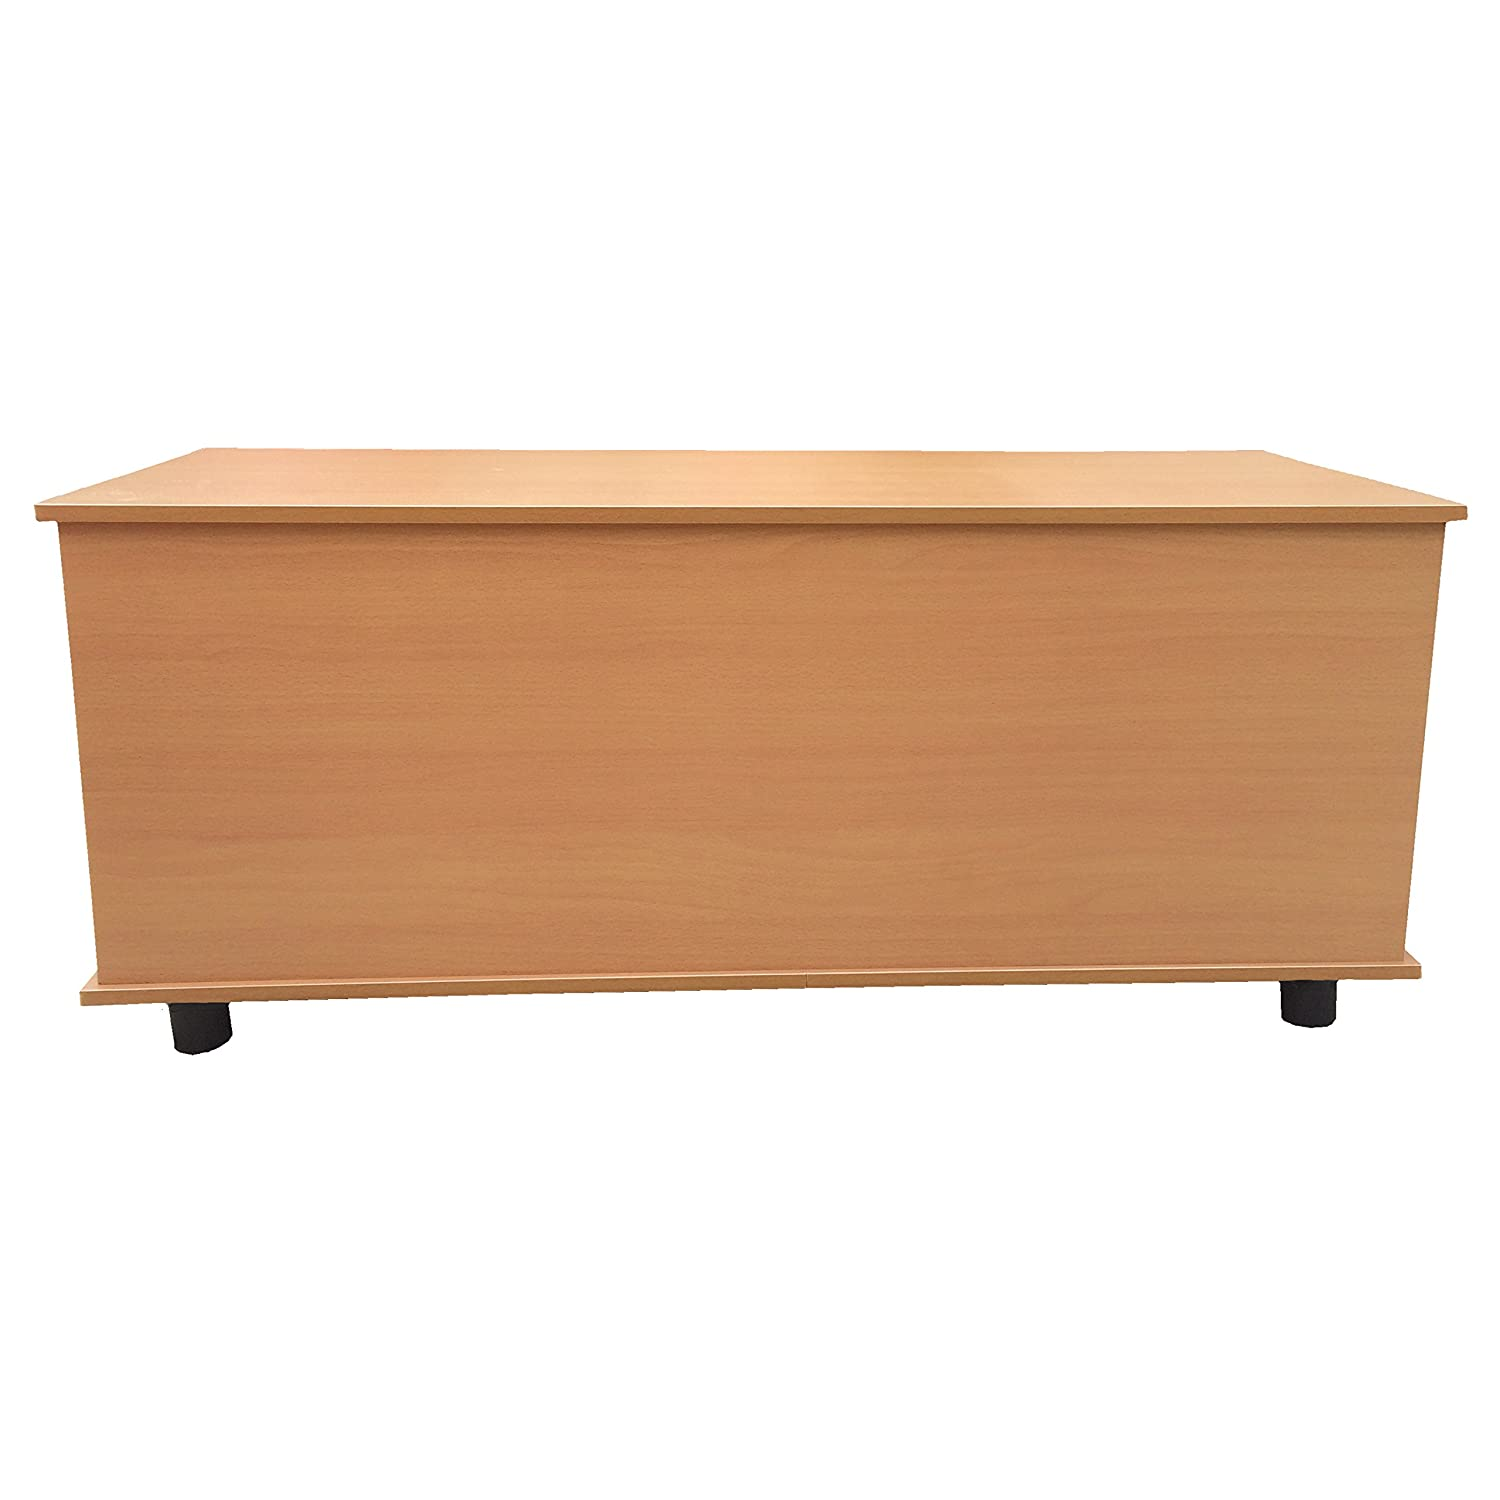 Large Wooden Ottoman Toy Box Trunk Chest Wooden Storage Bench Lid